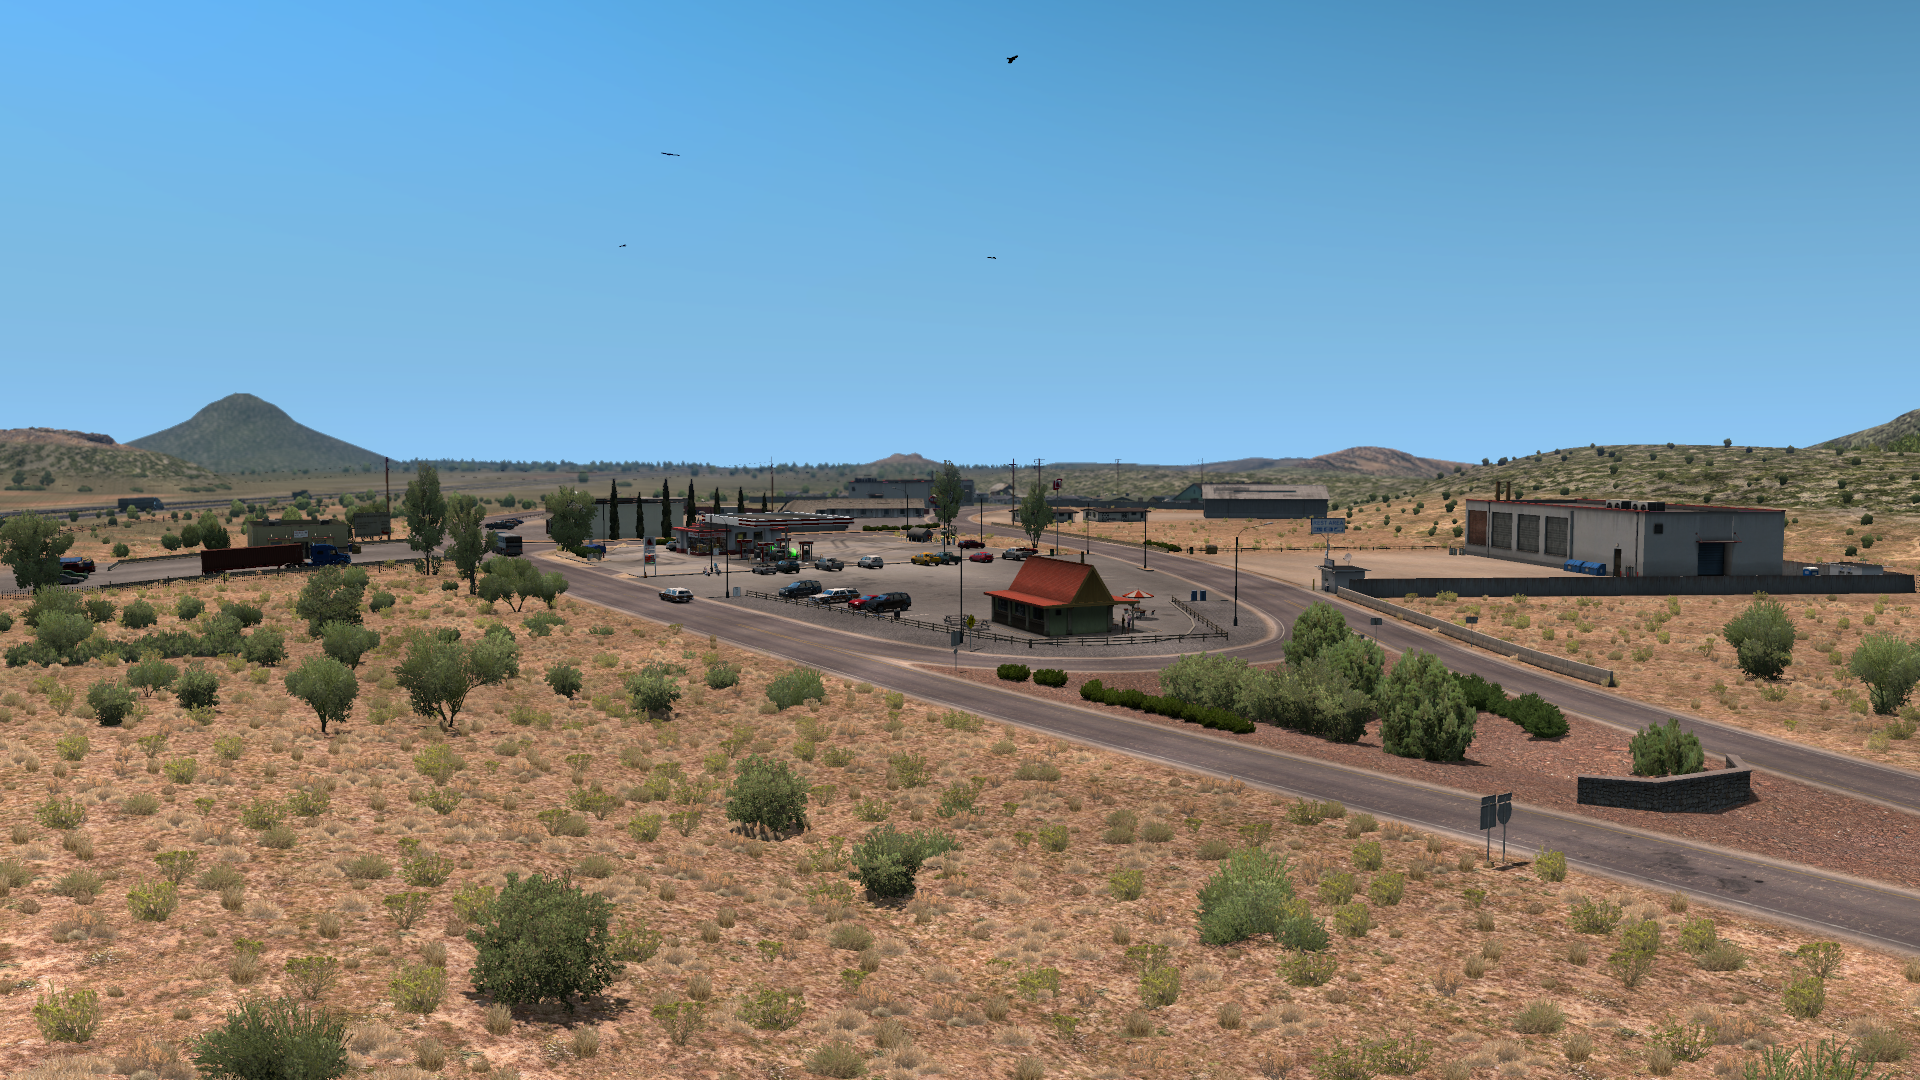 List of scenery towns in American Truck Simulator